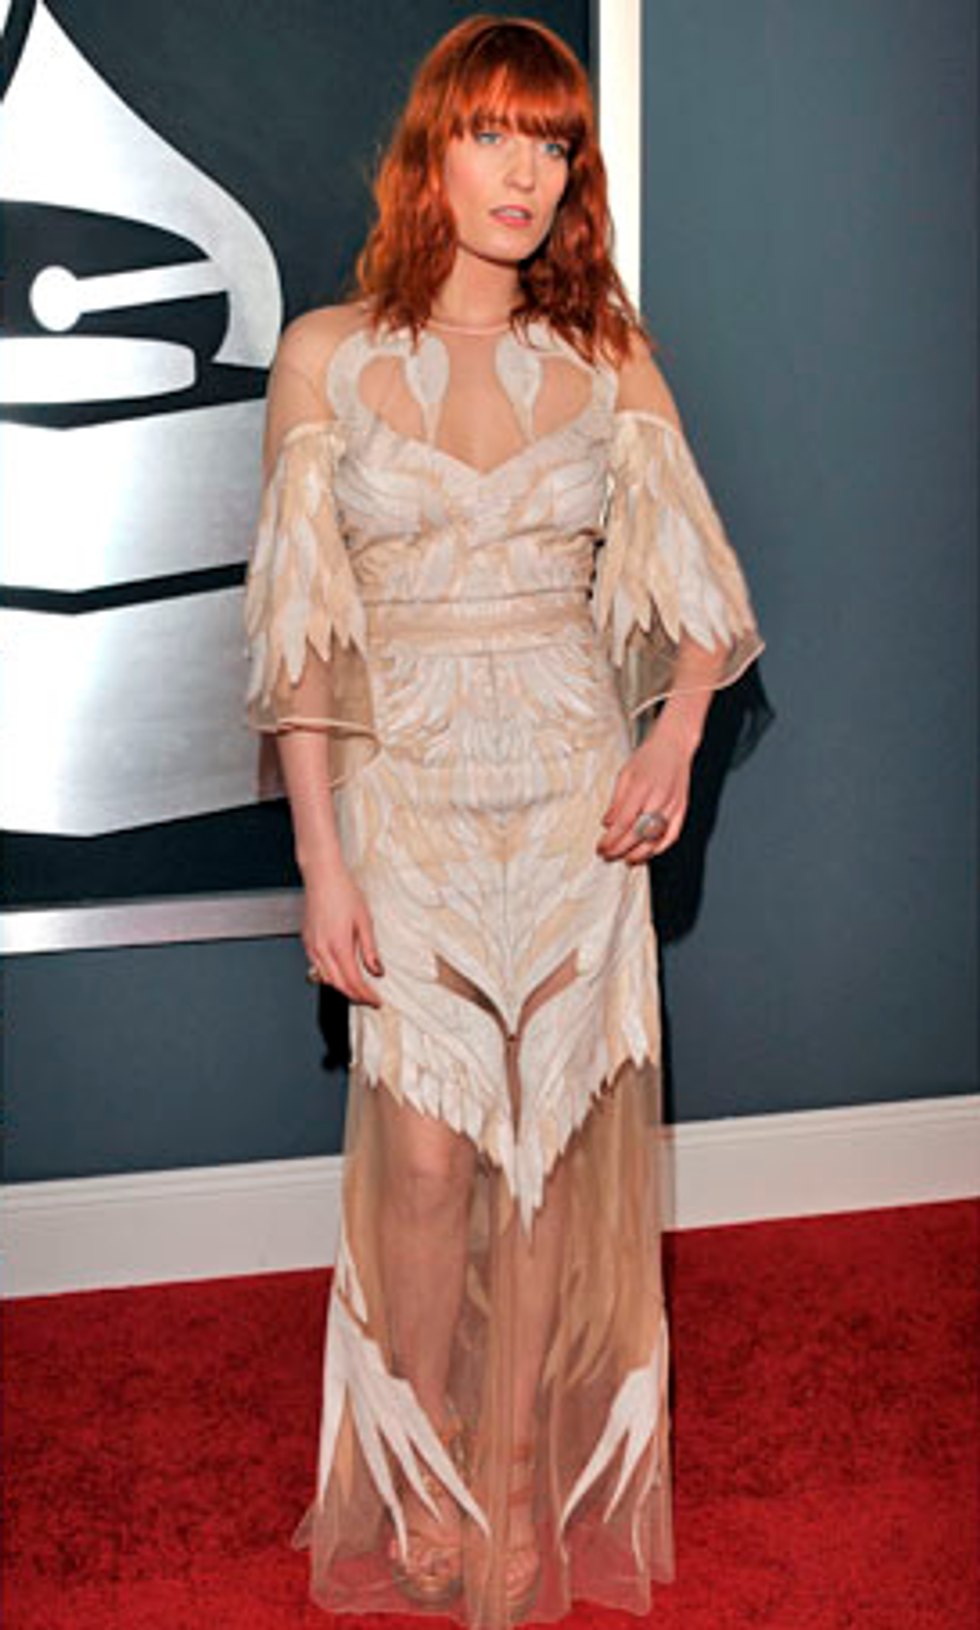 Scott Sternberg's Cookies + Florence Welch's Givenchy Dress in Today's Style Scraps